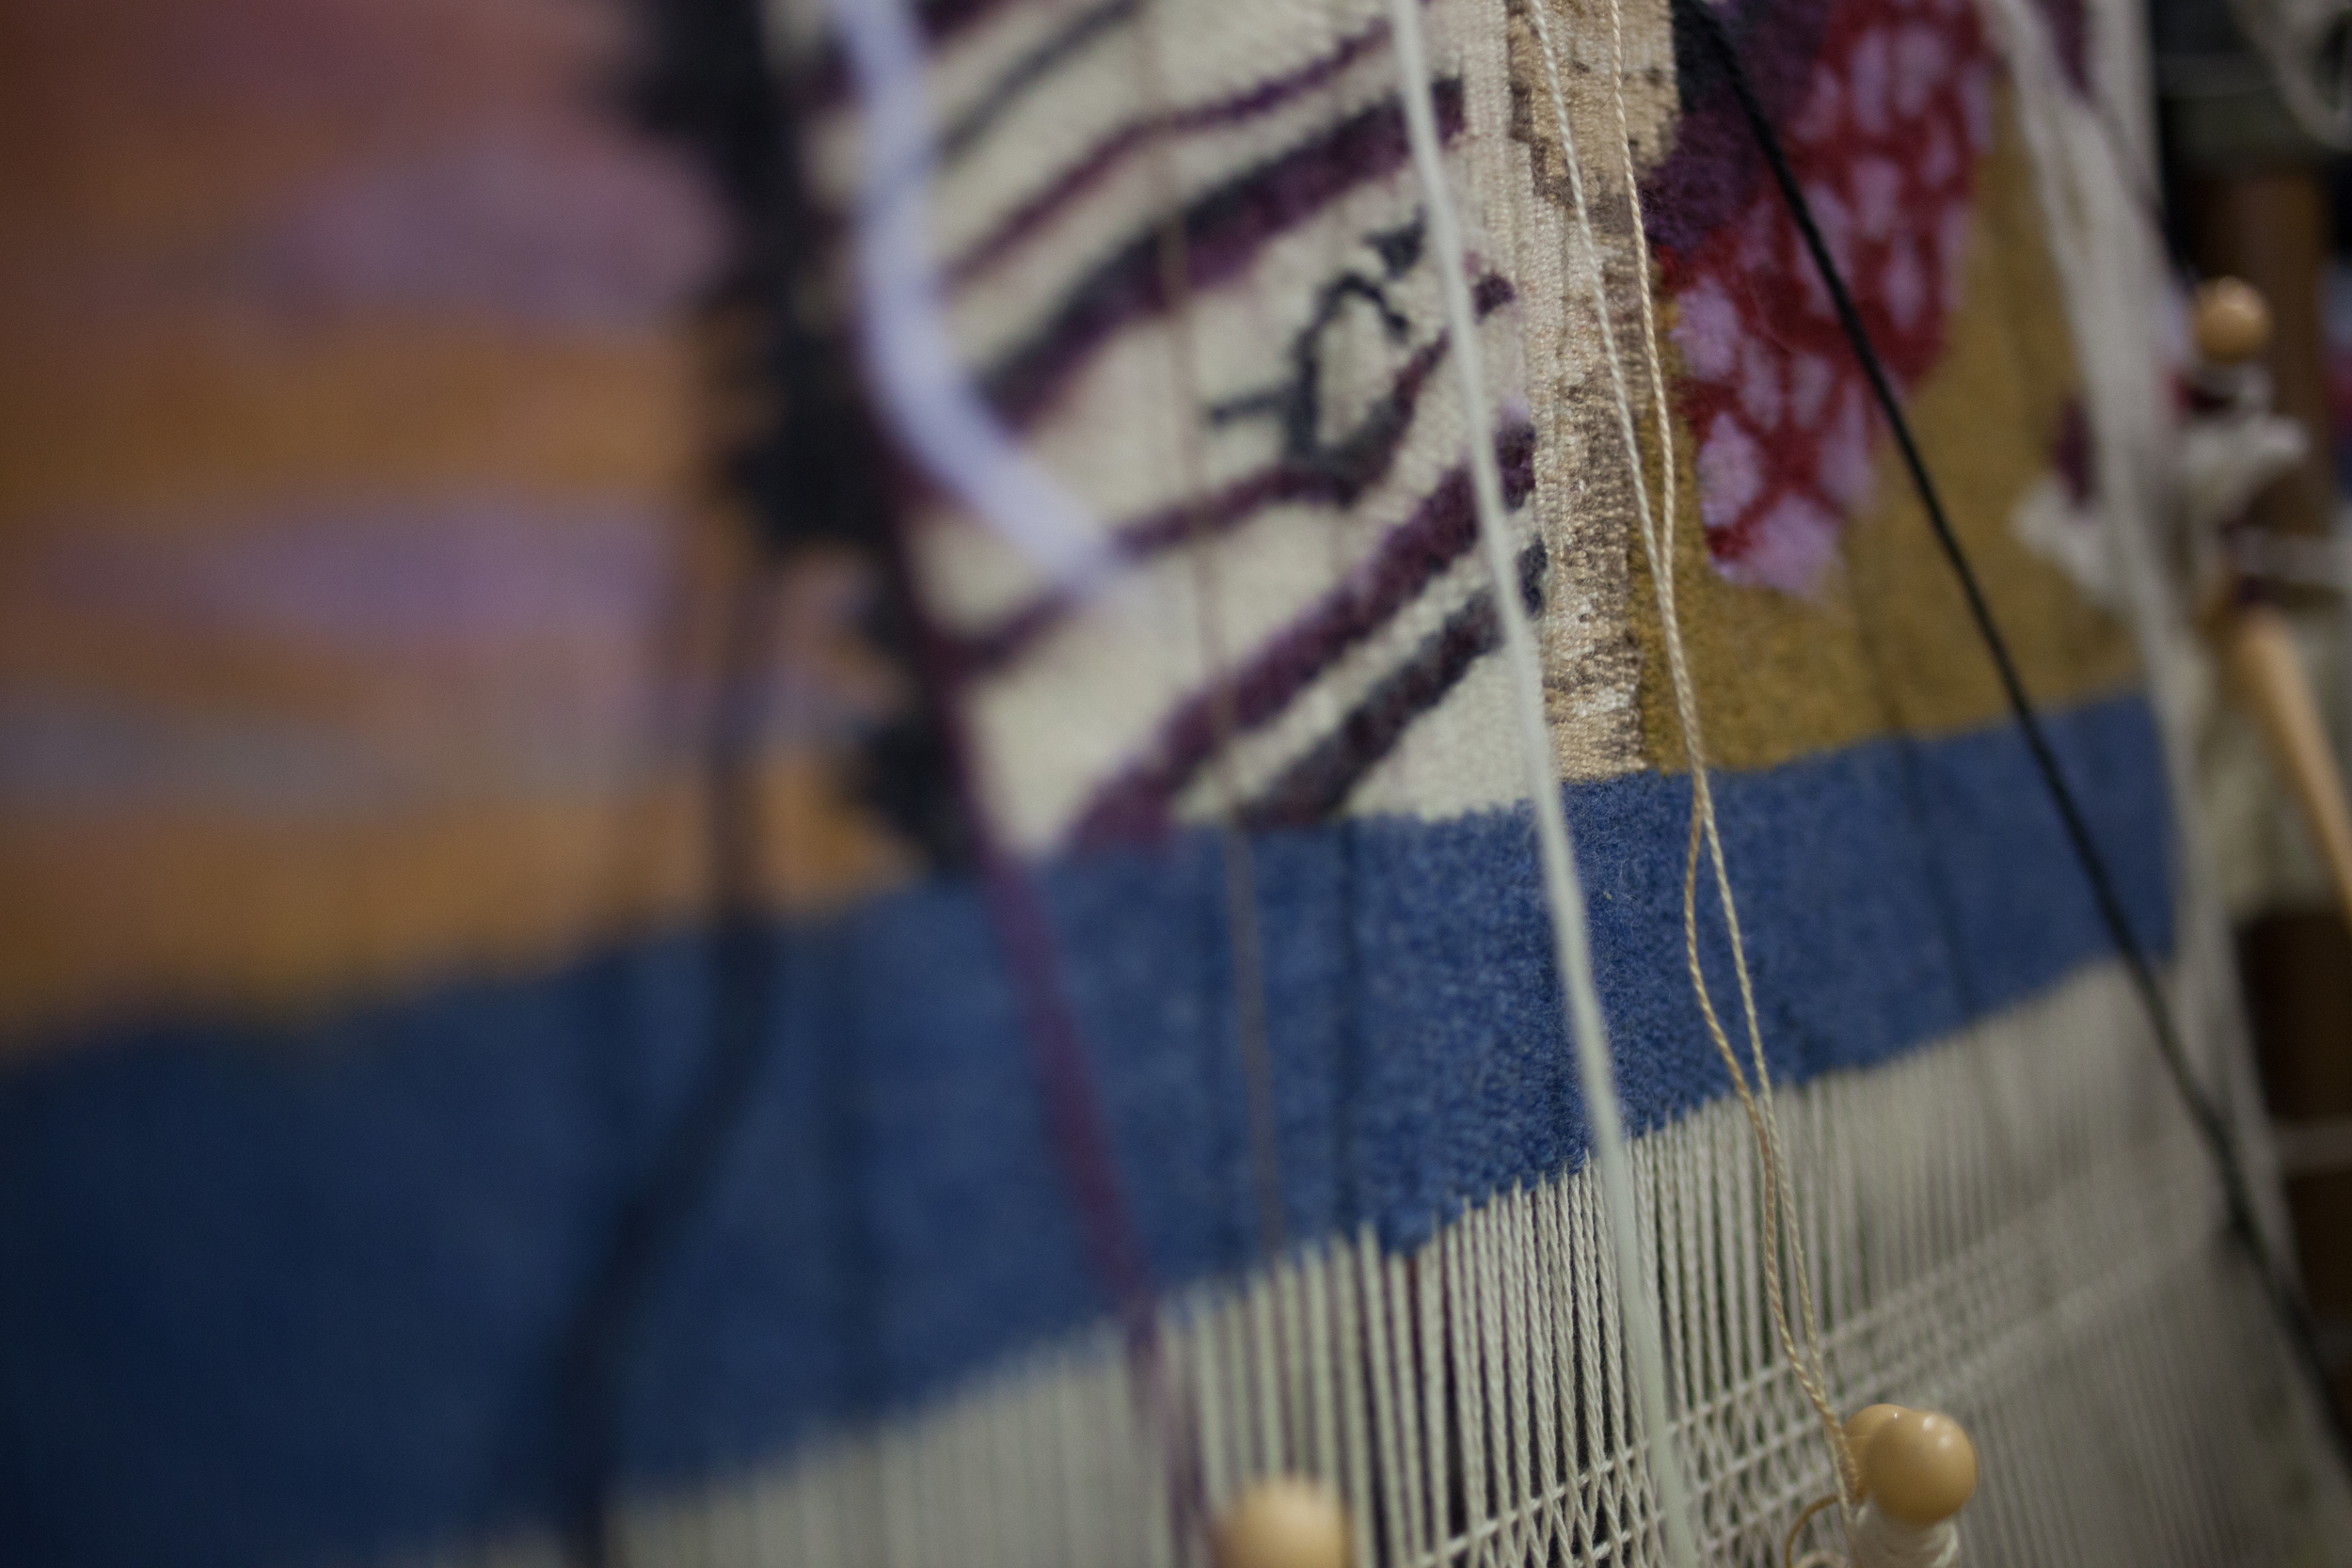 Delicious tapestry weaving by Denise Jones-Chu, @ Hello Beautiful.